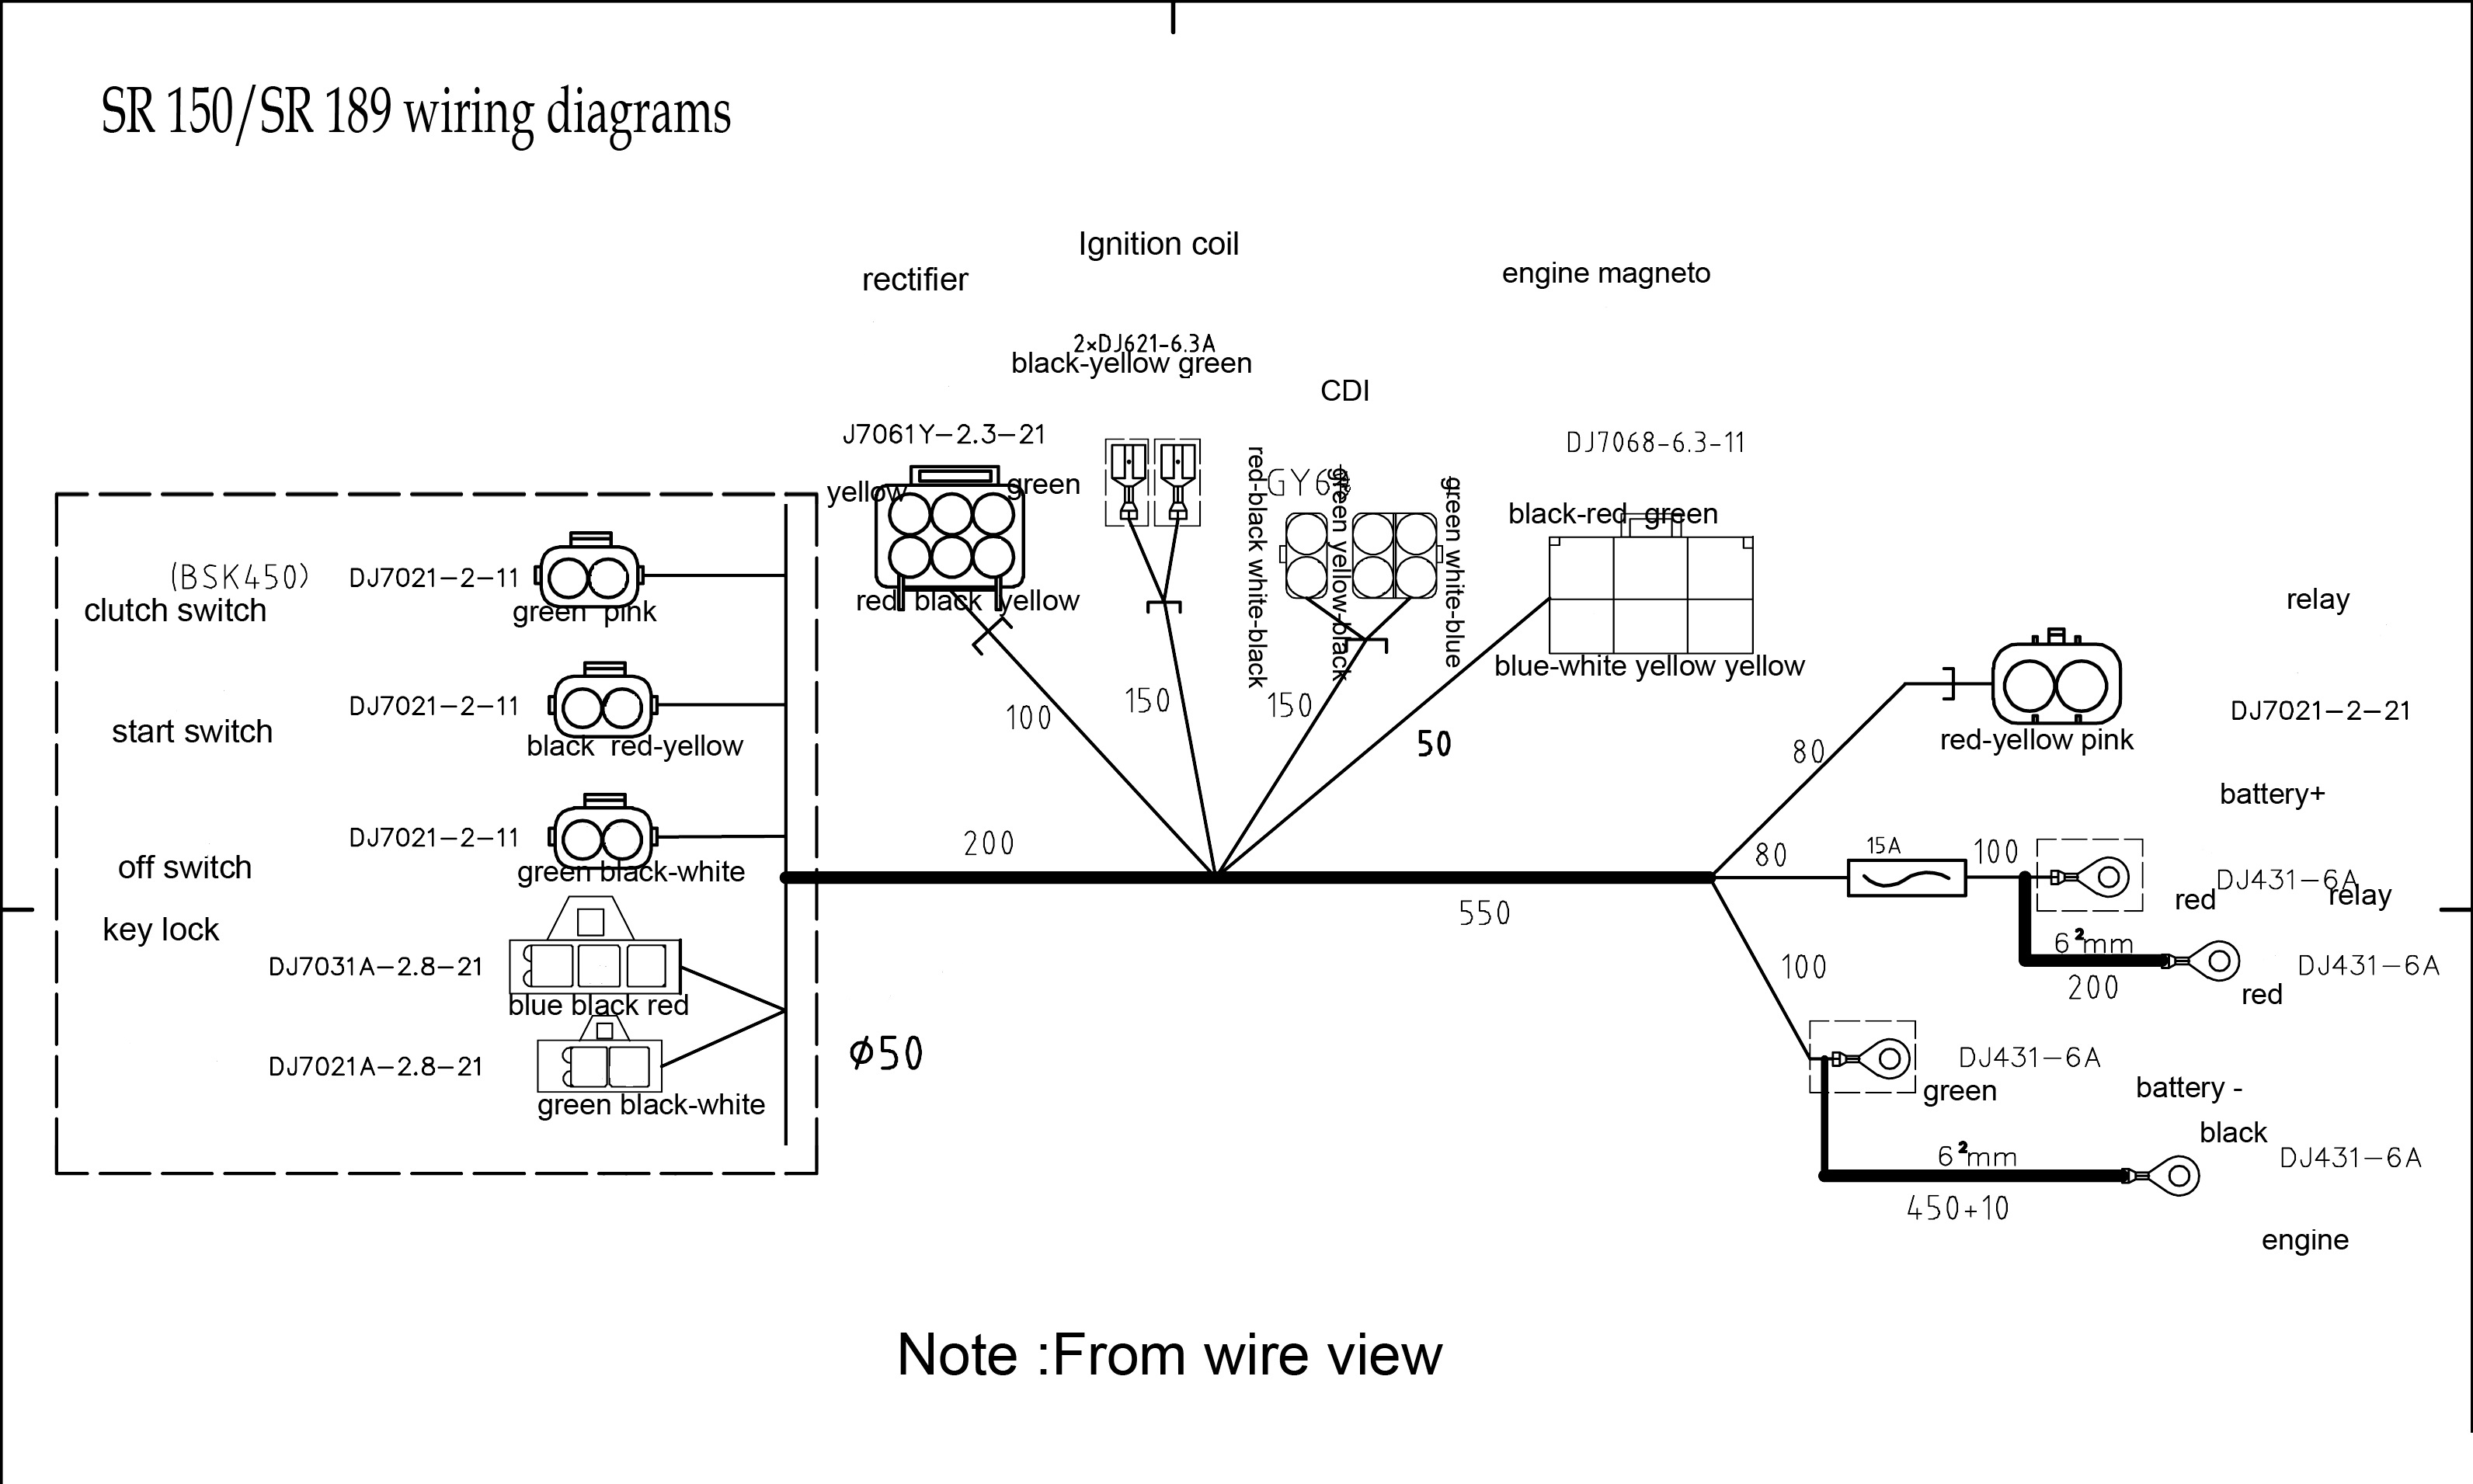 Wire Diagram on car audio install diagrams, auto frame diagrams, auto diagnostics, chevy truck diagrams, auto steering diagrams, auto interior diagrams, blank diagrams, zenith carburetors diagrams, electrical diagrams, auto blueprints, auto chassis, auto rear axle, auto lighting, auto transmission, auto tools, auto air conditioning diagrams, auto schematics, electronic circuit diagrams, auto wiring symbols, auto starter,